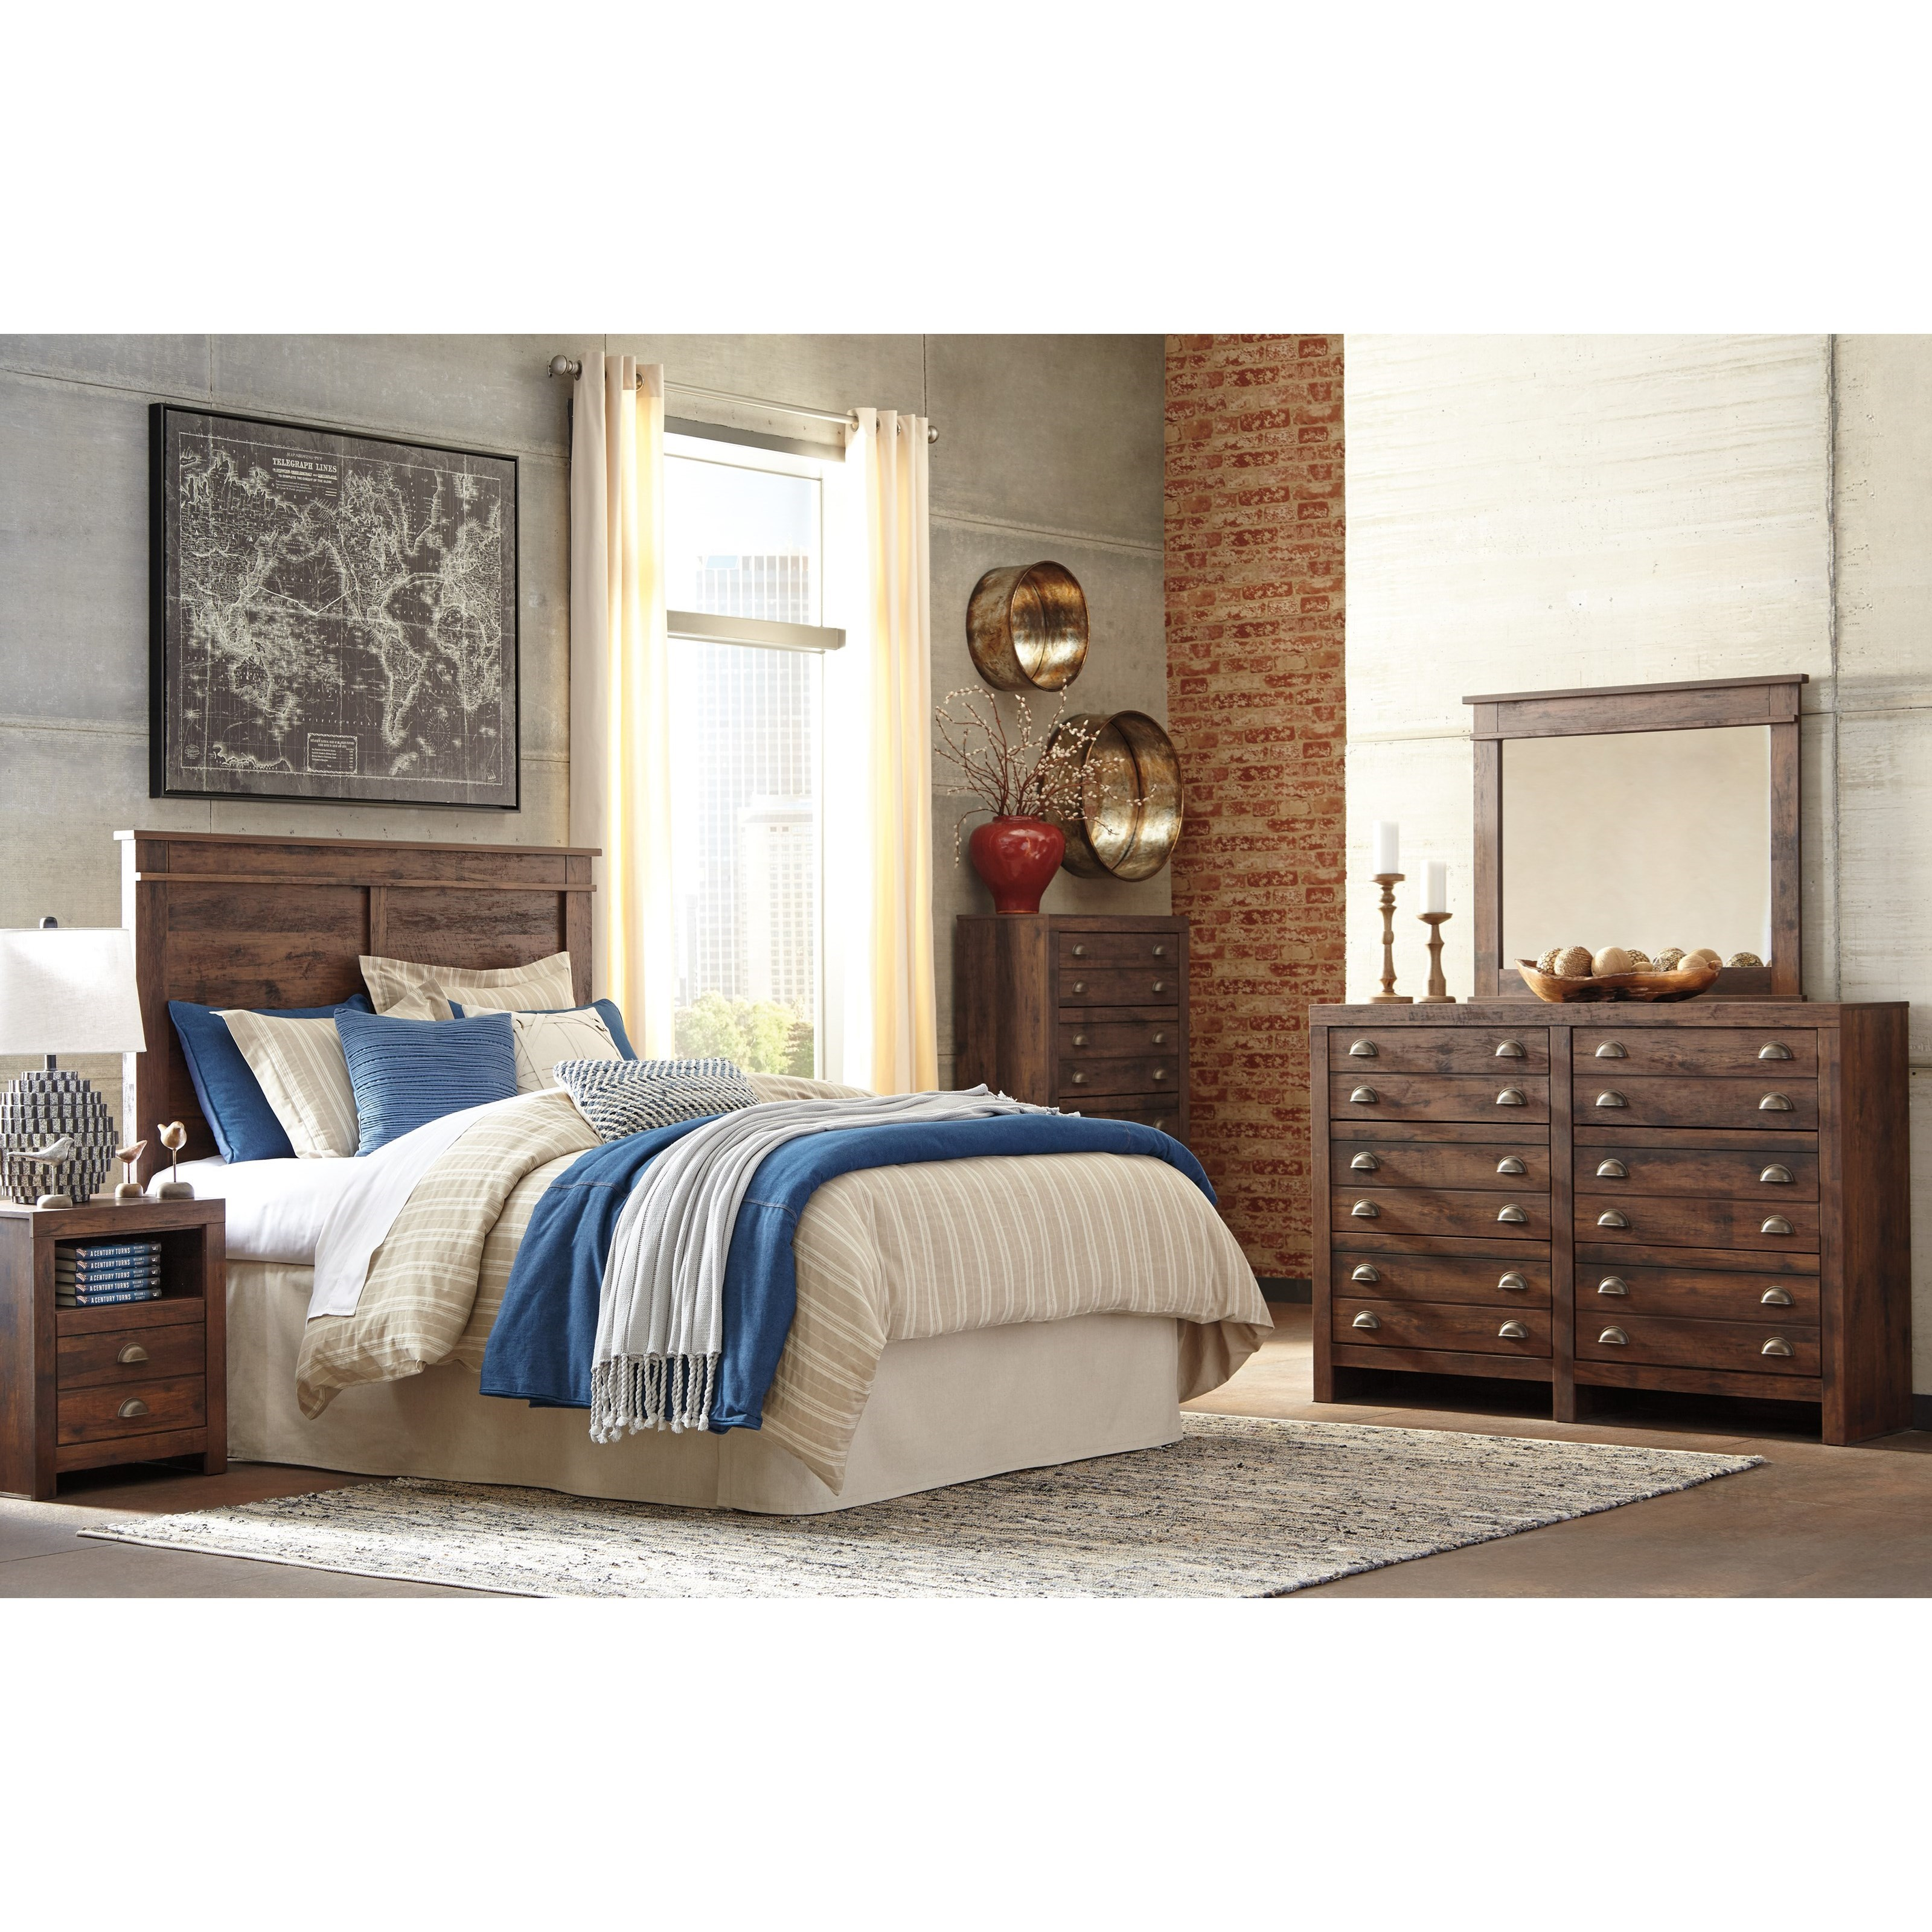 Signature Design by Ashley Hammerstead Queen Bedroom Group - Item Number: B407 Q Bedroom Group 3